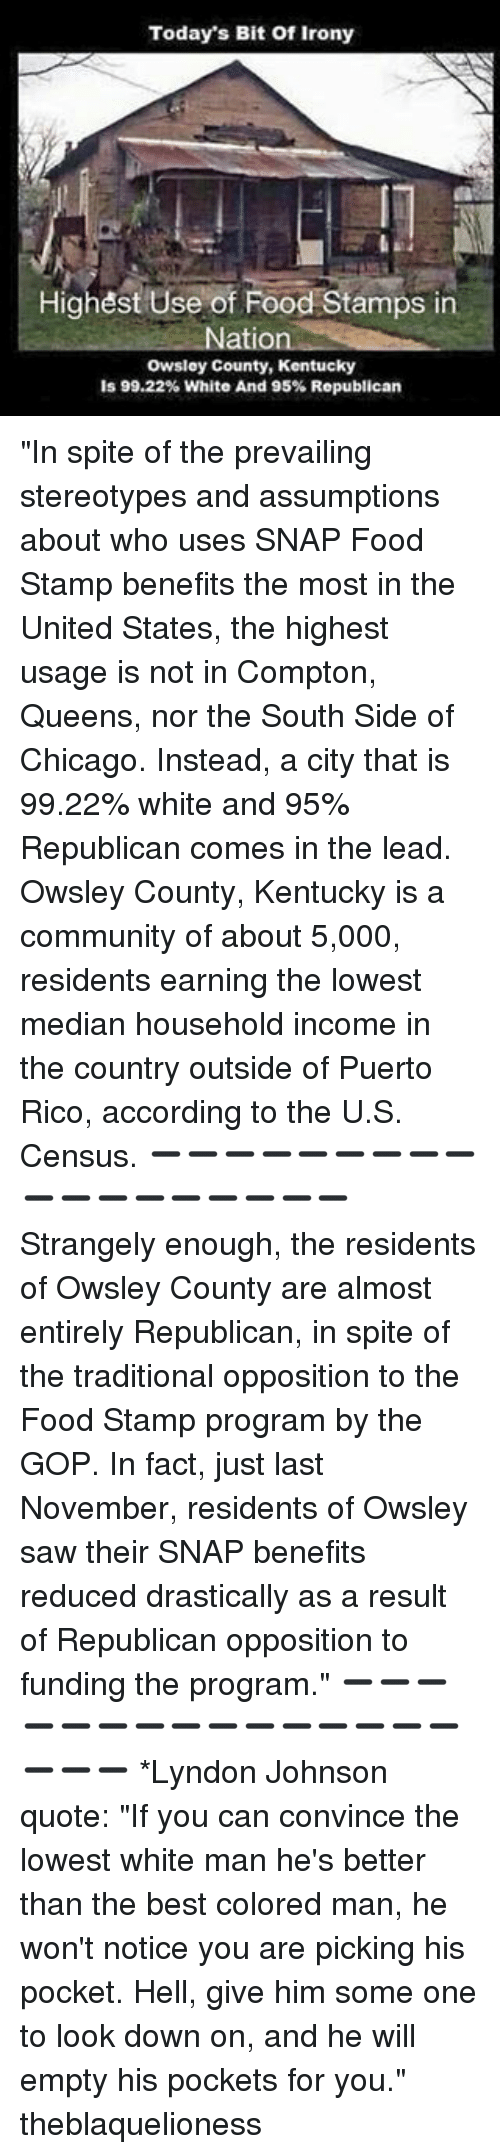 "Memes, Food Stamps, and Puerto Rico: Today's Bit of Irony  Highest Use of Food Stamps in  Nation  owsley County, Kentucky  is 99.22% White And 95% Republican ""In spite of the prevailing stereotypes and assumptions about who uses SNAP Food Stamp benefits the most in the United States, the highest usage is not in Compton, Queens, nor the South Side of Chicago. Instead, a city that is 99.22% white and 95% Republican comes in the lead. Owsley County, Kentucky is a community of about 5,000, residents earning the lowest median household income in the country outside of Puerto Rico, according to the U.S. Census. ➖➖➖➖➖➖➖➖➖➖➖➖➖➖➖➖➖➖ Strangely enough, the residents of Owsley County are almost entirely Republican, in spite of the traditional opposition to the Food Stamp program by the GOP. In fact, just last November, residents of Owsley saw their SNAP benefits reduced drastically as a result of Republican opposition to funding the program."" ➖➖➖➖➖➖➖➖➖➖➖➖➖➖➖➖➖➖ *Lyndon Johnson quote: ""If you can convince the lowest white man he's better than the best colored man, he won't notice you are picking his pocket. Hell, give him some one to look down on, and he will empty his pockets for you."" theblaquelioness"